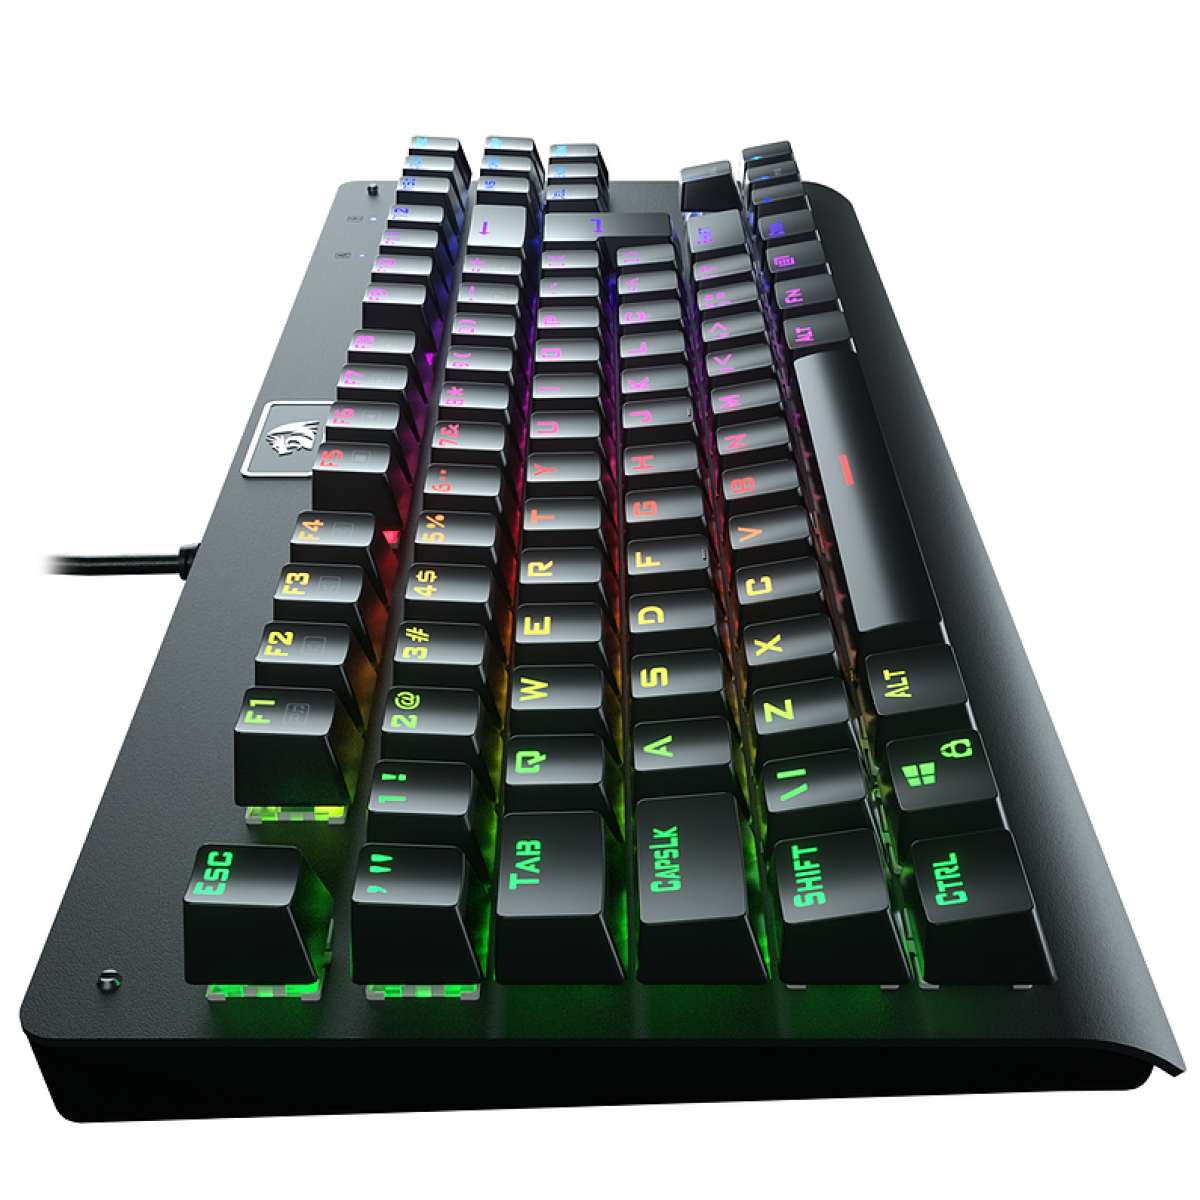 Teclado Mecânico ReDragon, Dark Avenger, RGB, ABNT2, Black, Switch Blue, K568-1